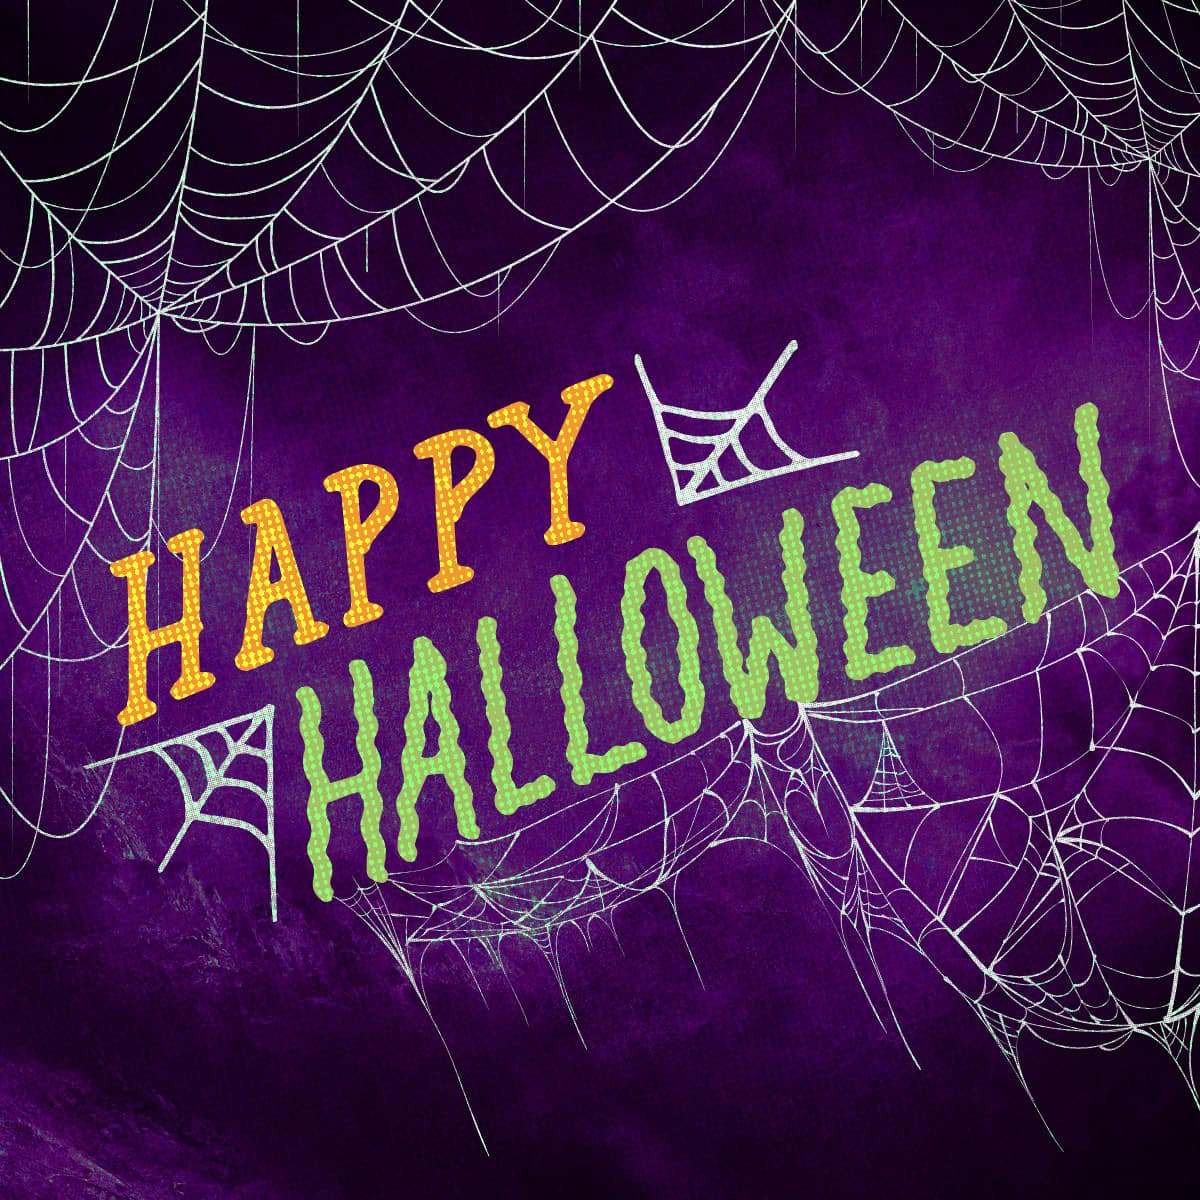 Have a Happy Halloween with these Trick or treating safety tips